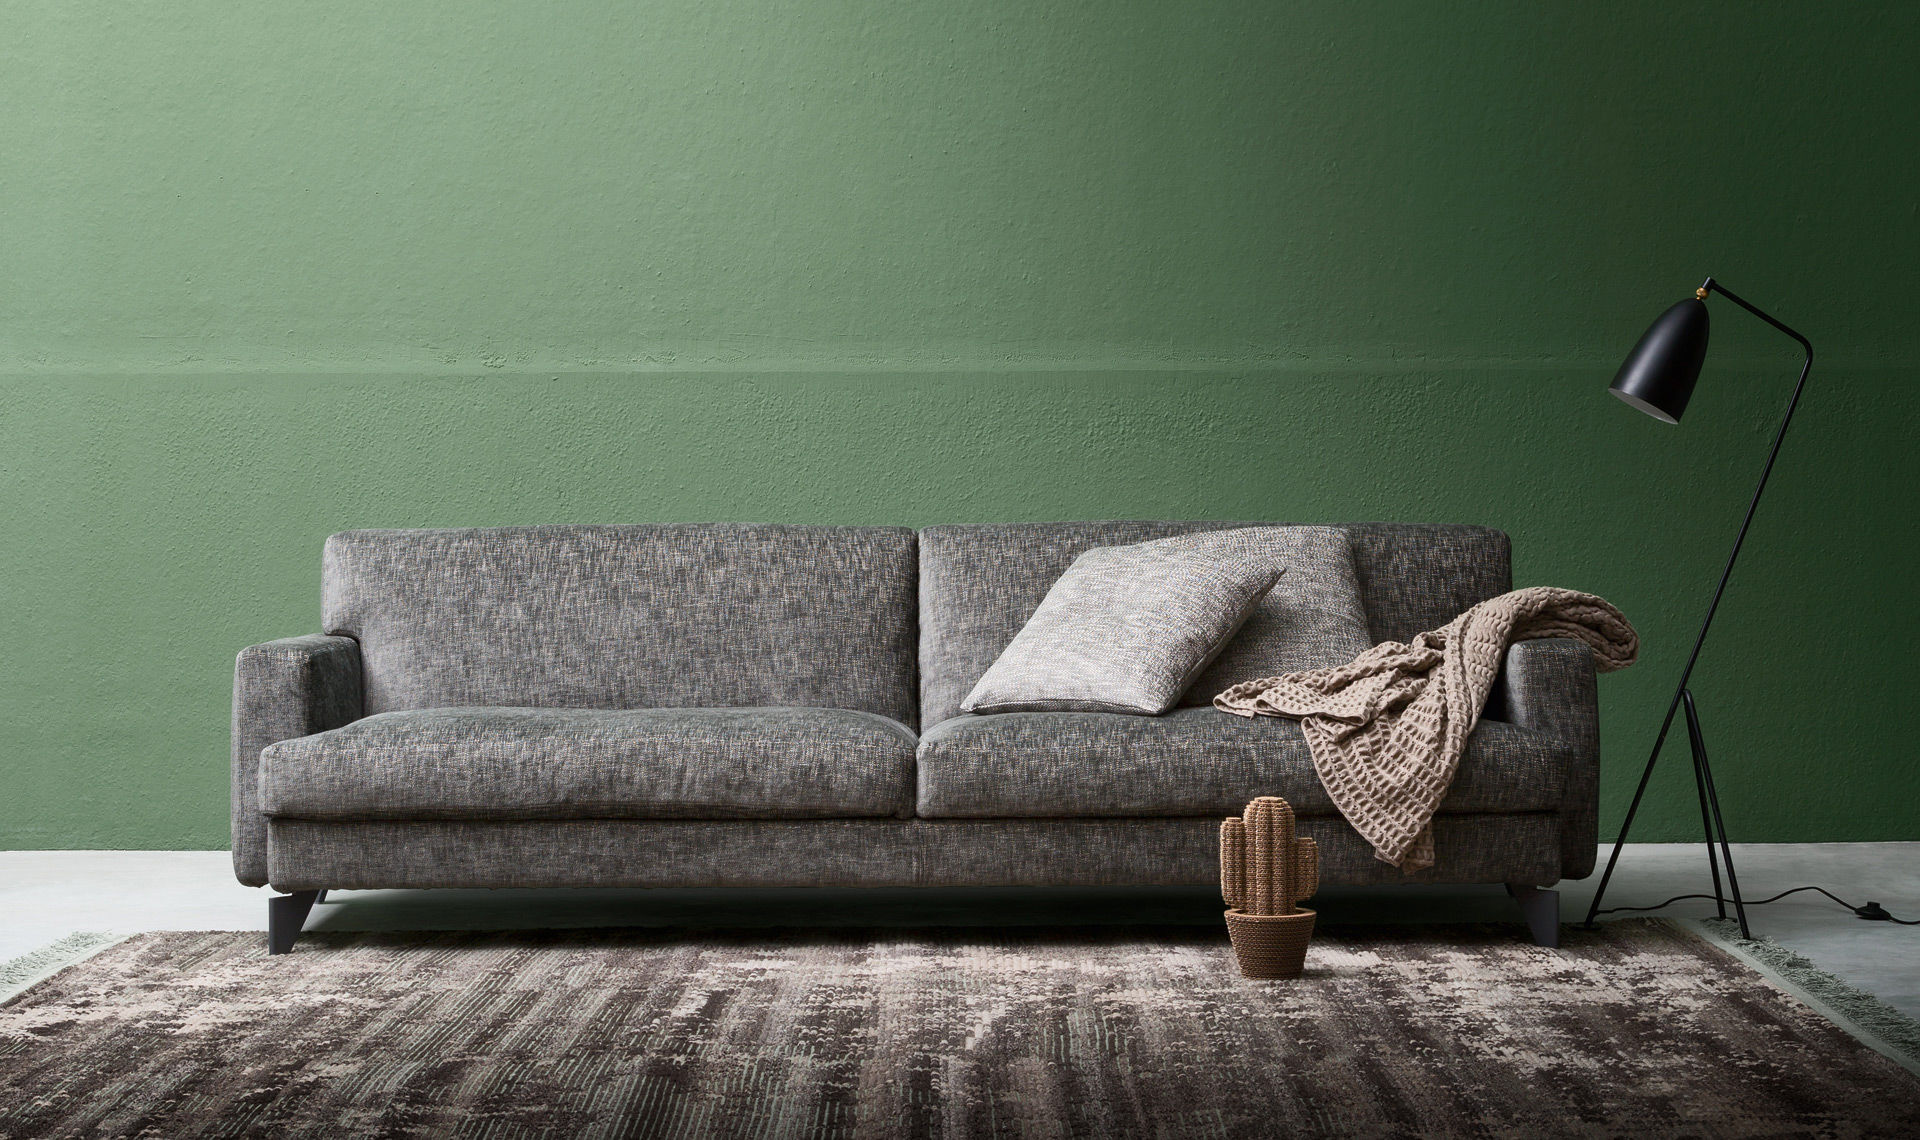 Modular Sofa Contemporary Fabric Leather Utah By Enrico Cesana